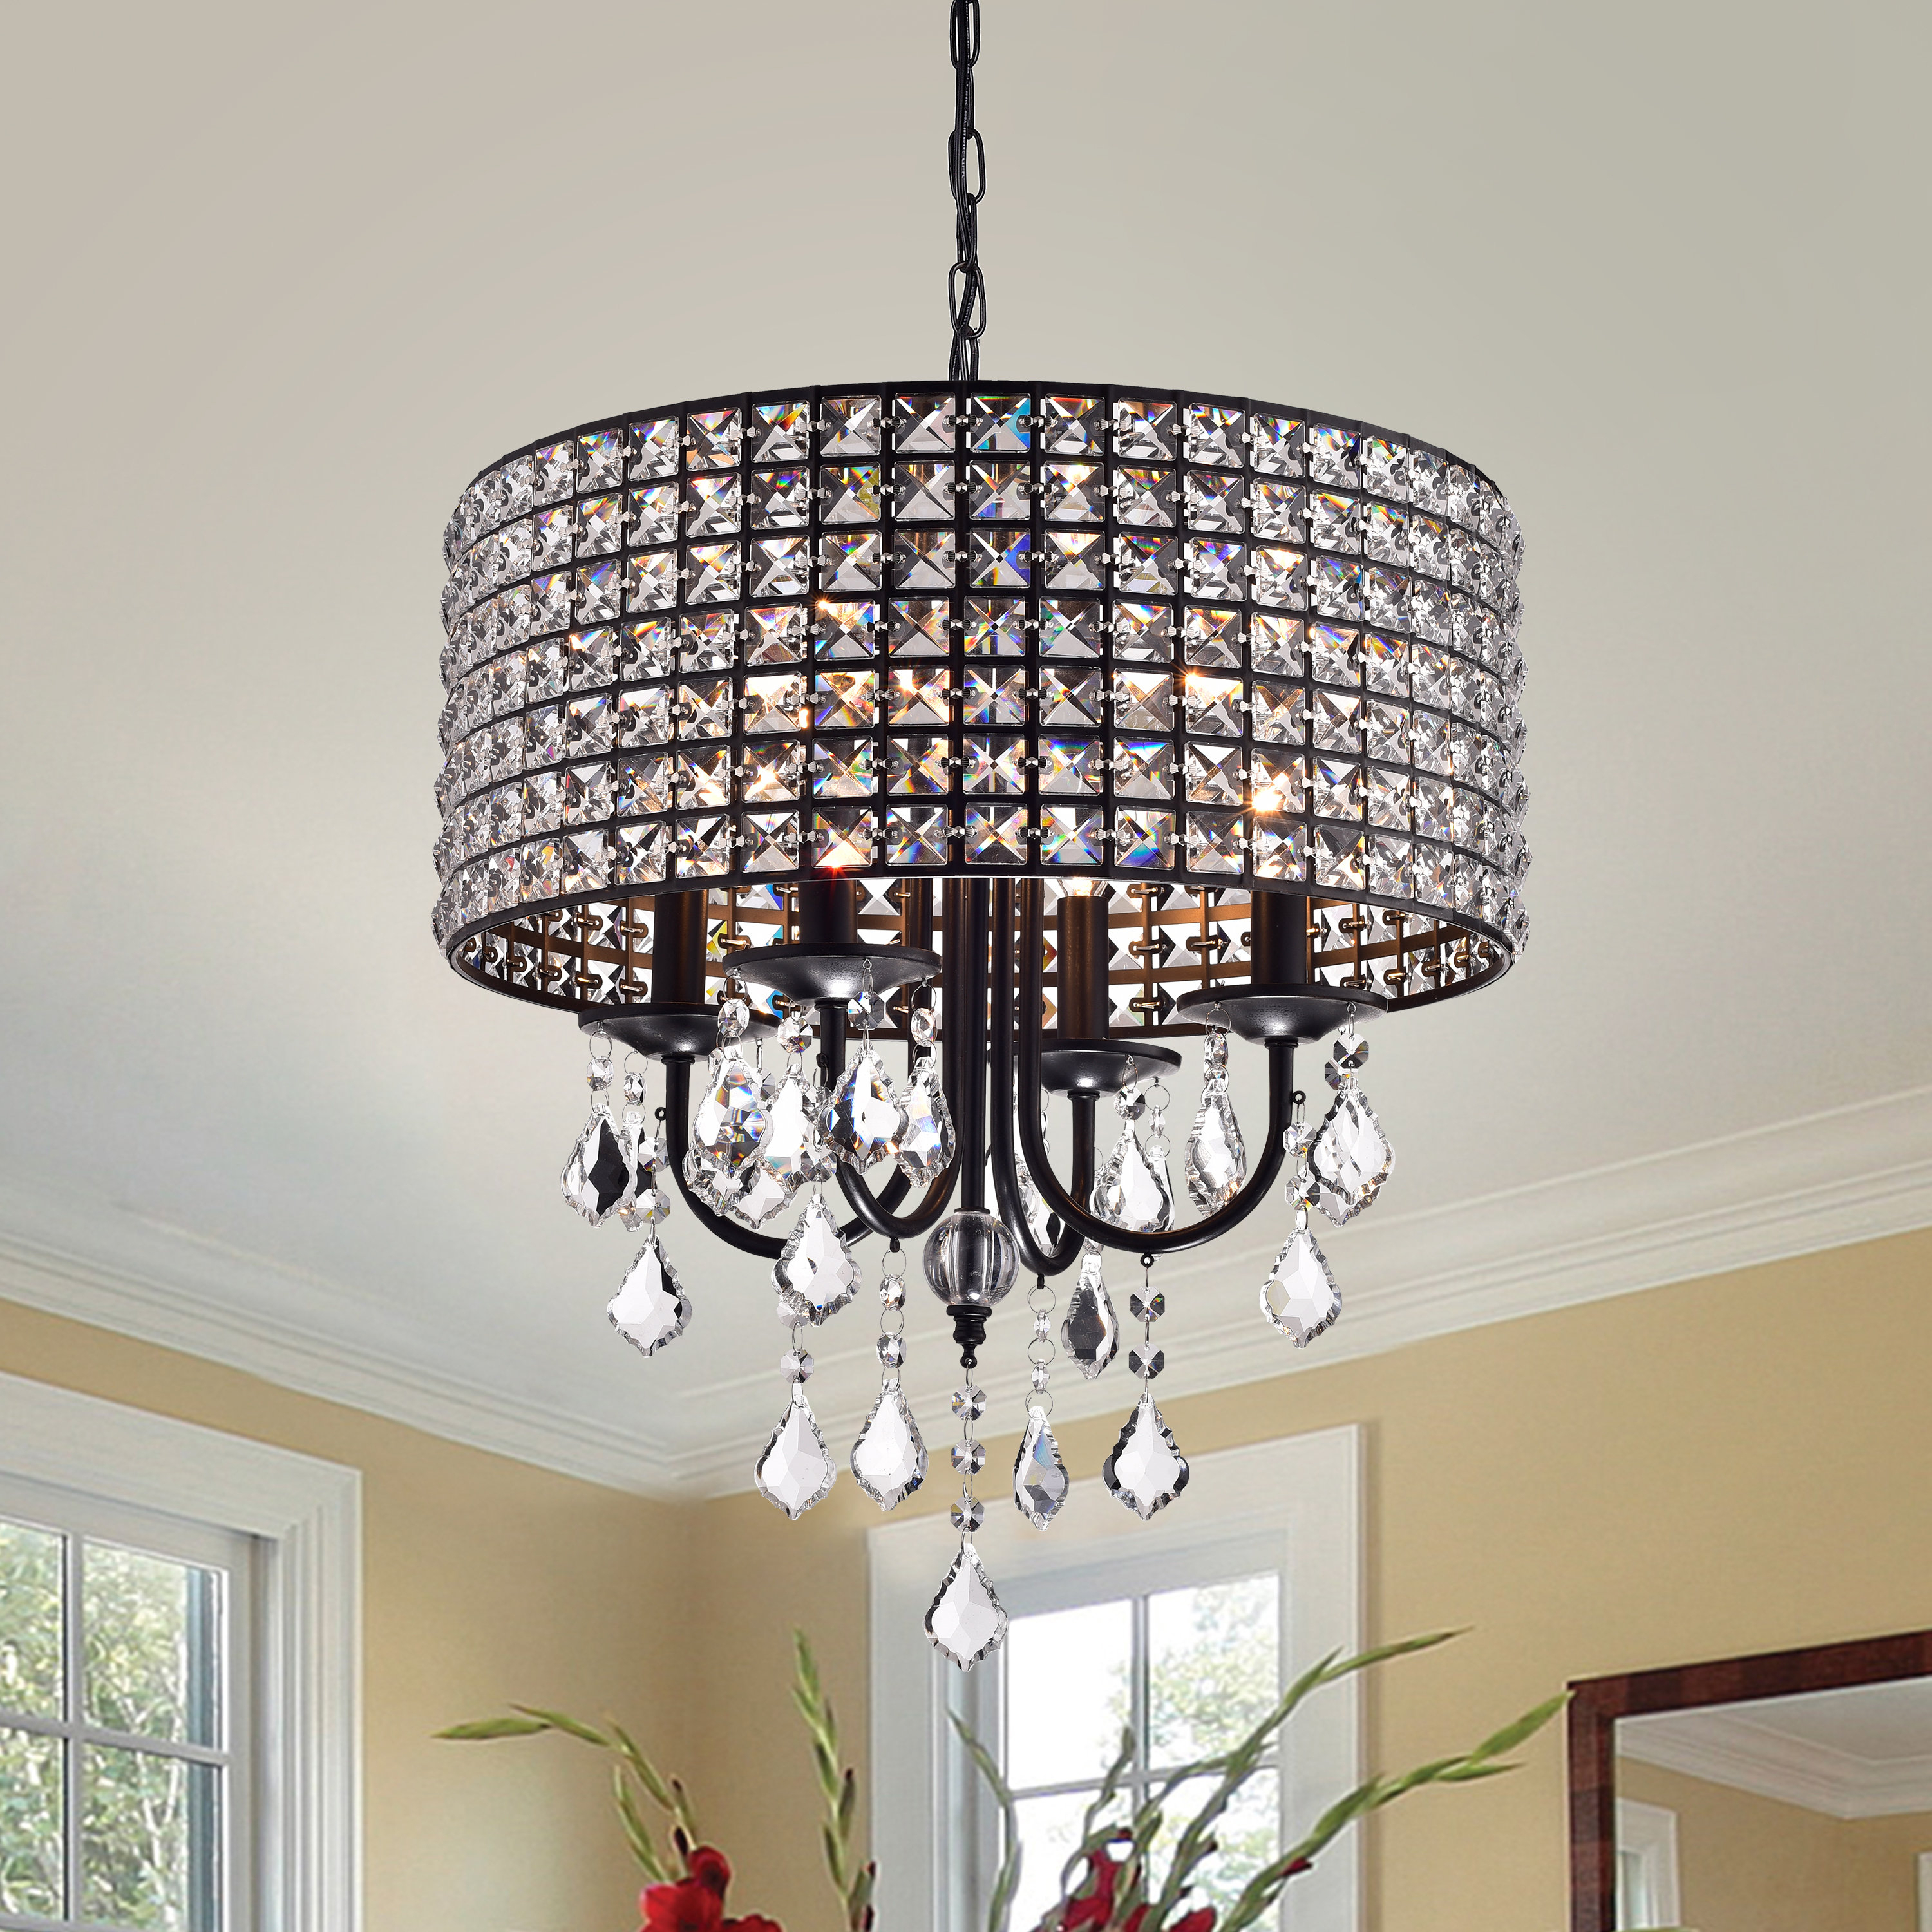 Mckamey 4 Light Crystal Chandeliers Throughout Fashionable Albano 4 Light Crystal Chandelier (View 11 of 20)